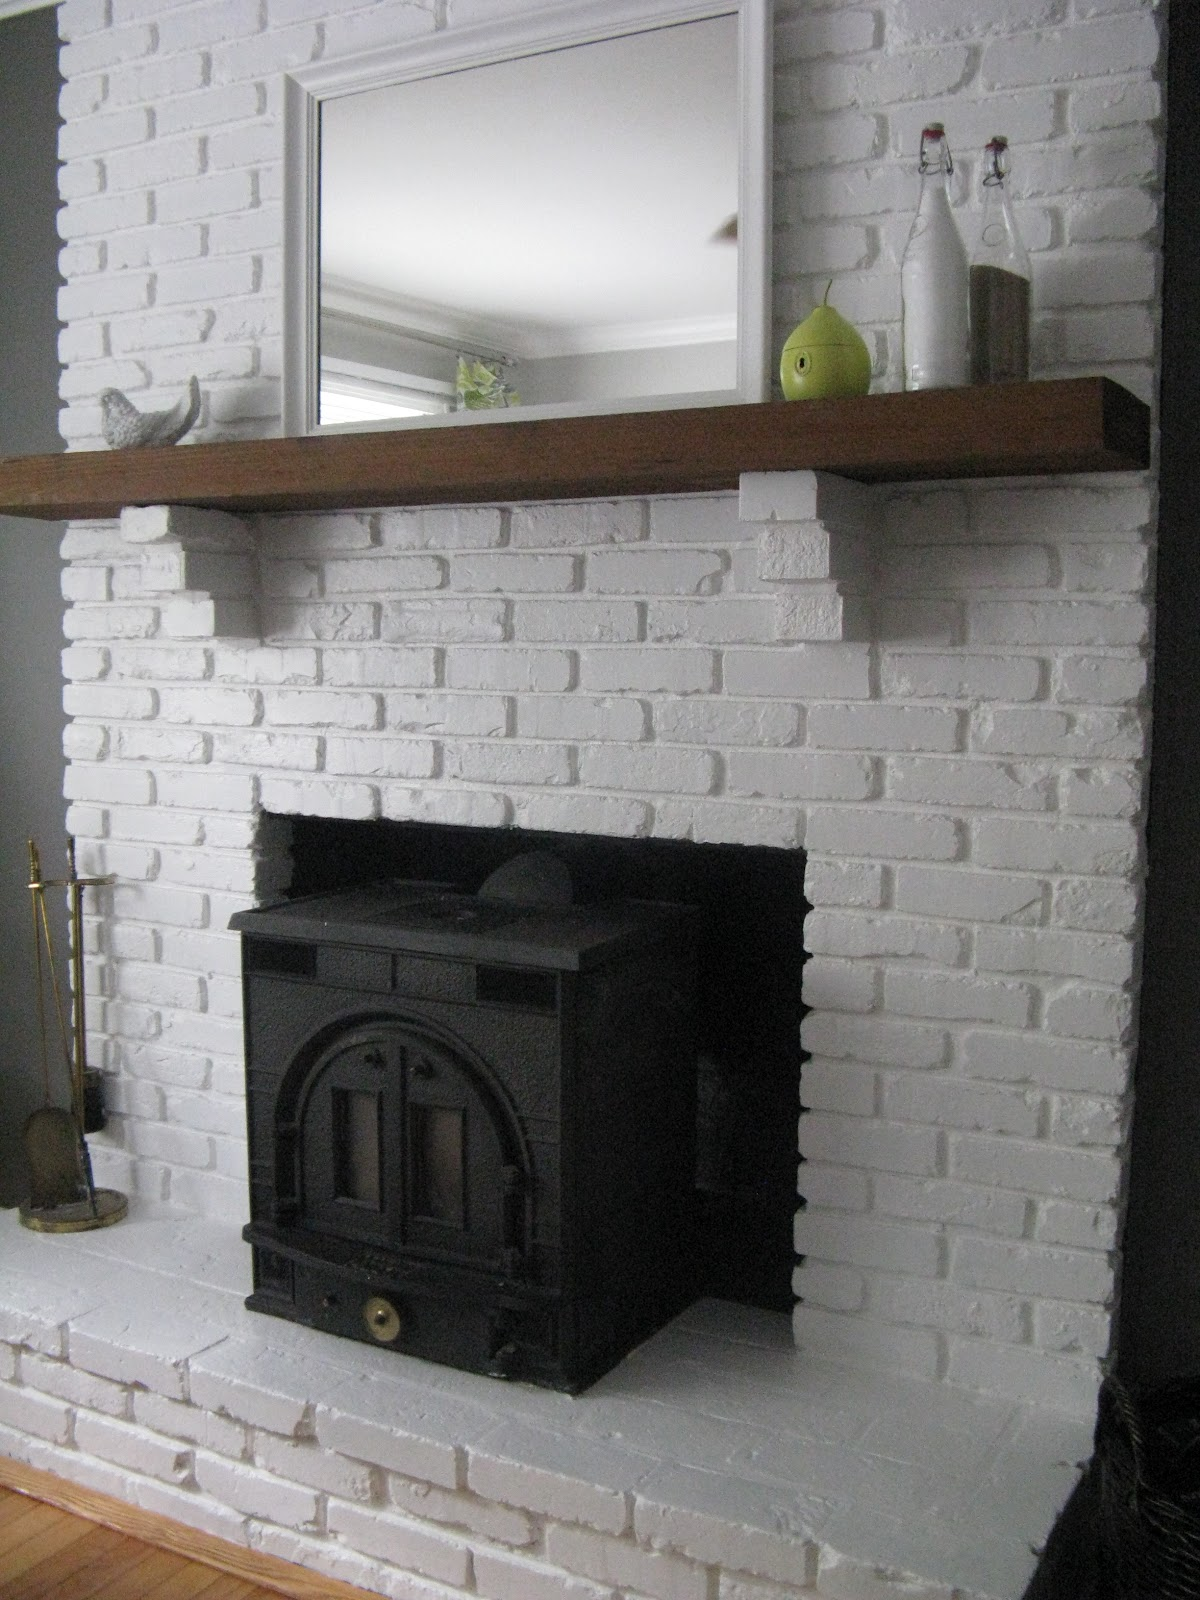 Olive Coast Painted Brick Fireplace And New Wall Colors